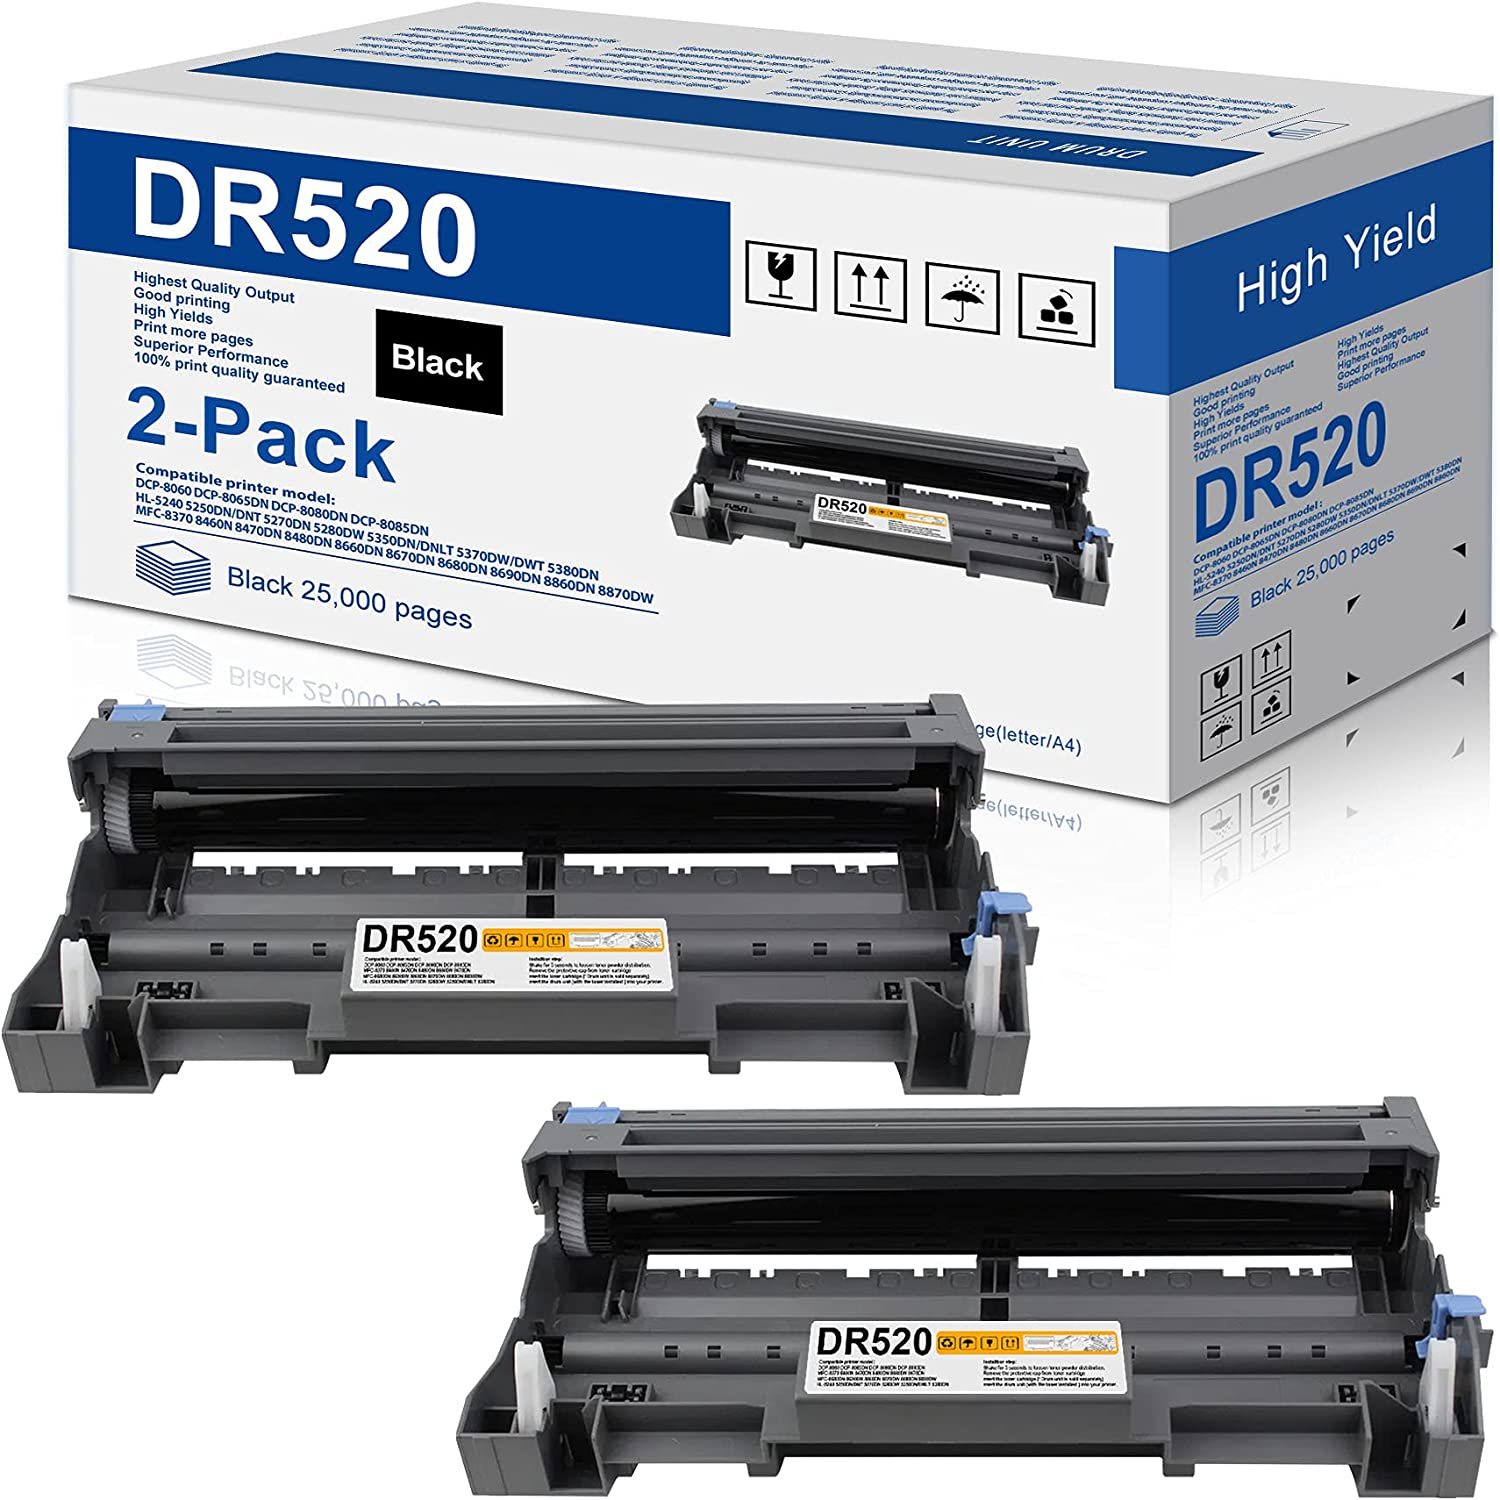 2-Pack Black Compatible Drum Unit Spasm price DR520 Replacement Quantity limited Brother for